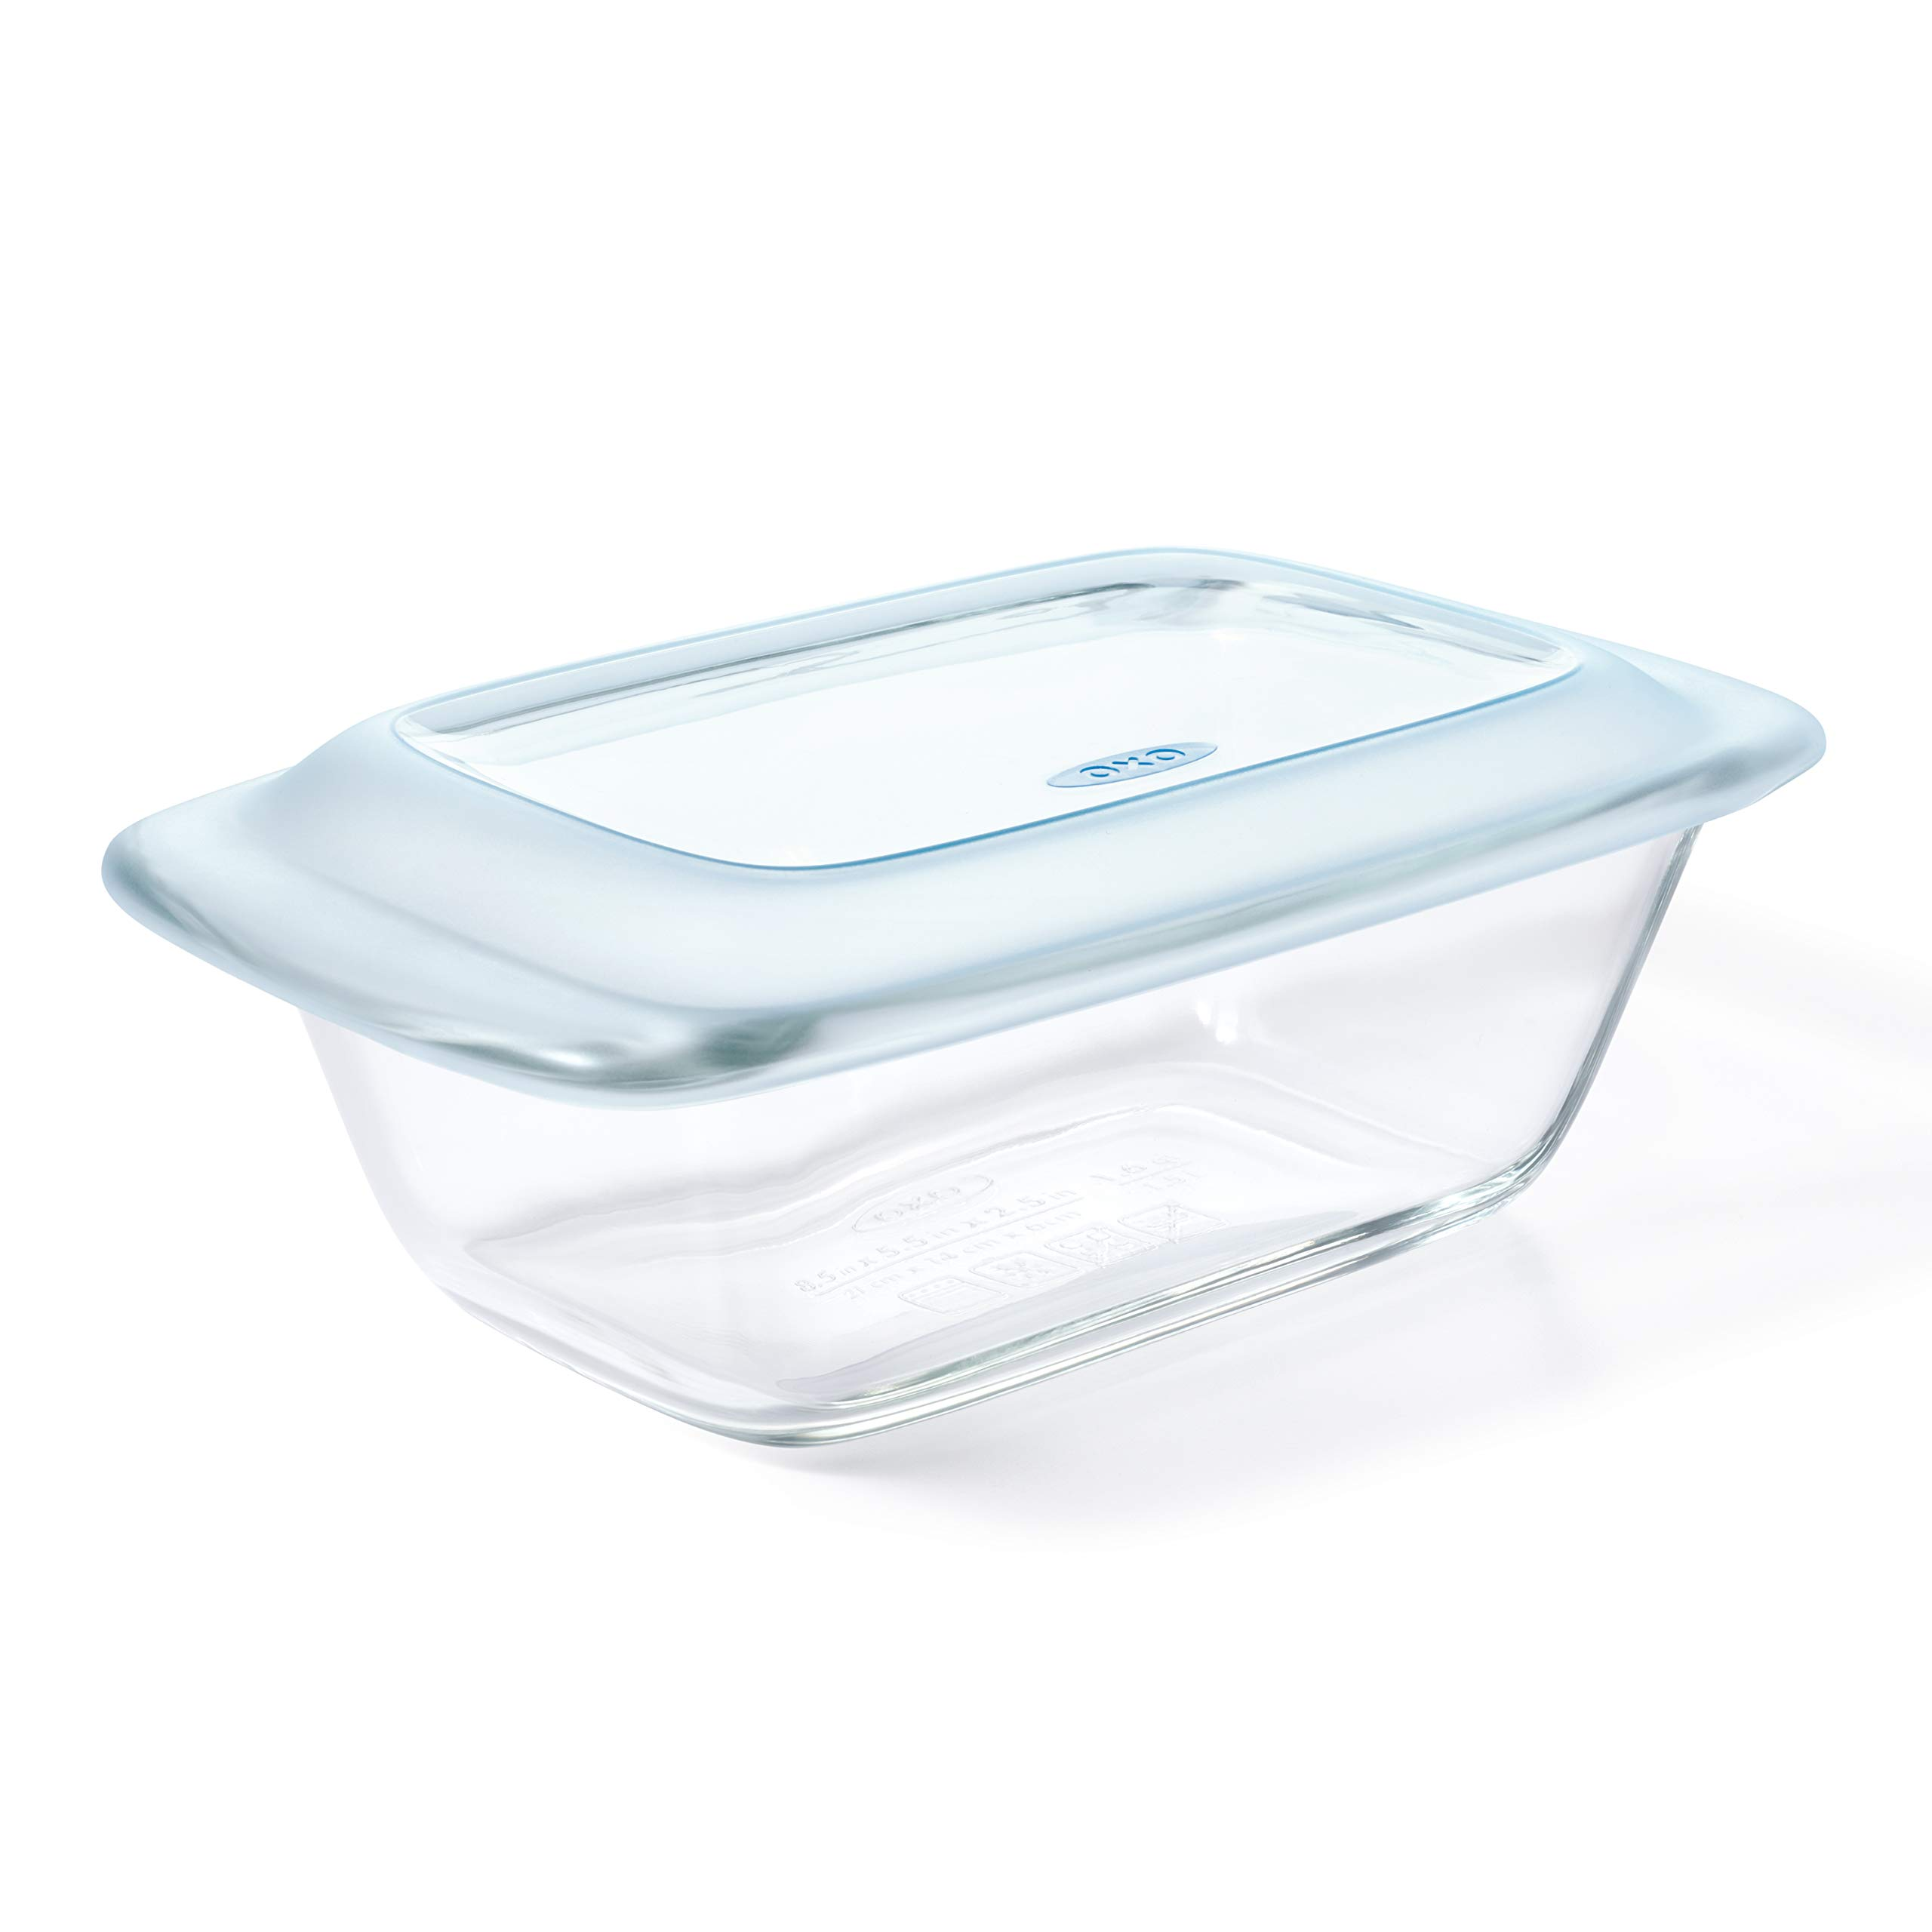 OXO Good Grips Glass Loaf Pan with Lid by OXO